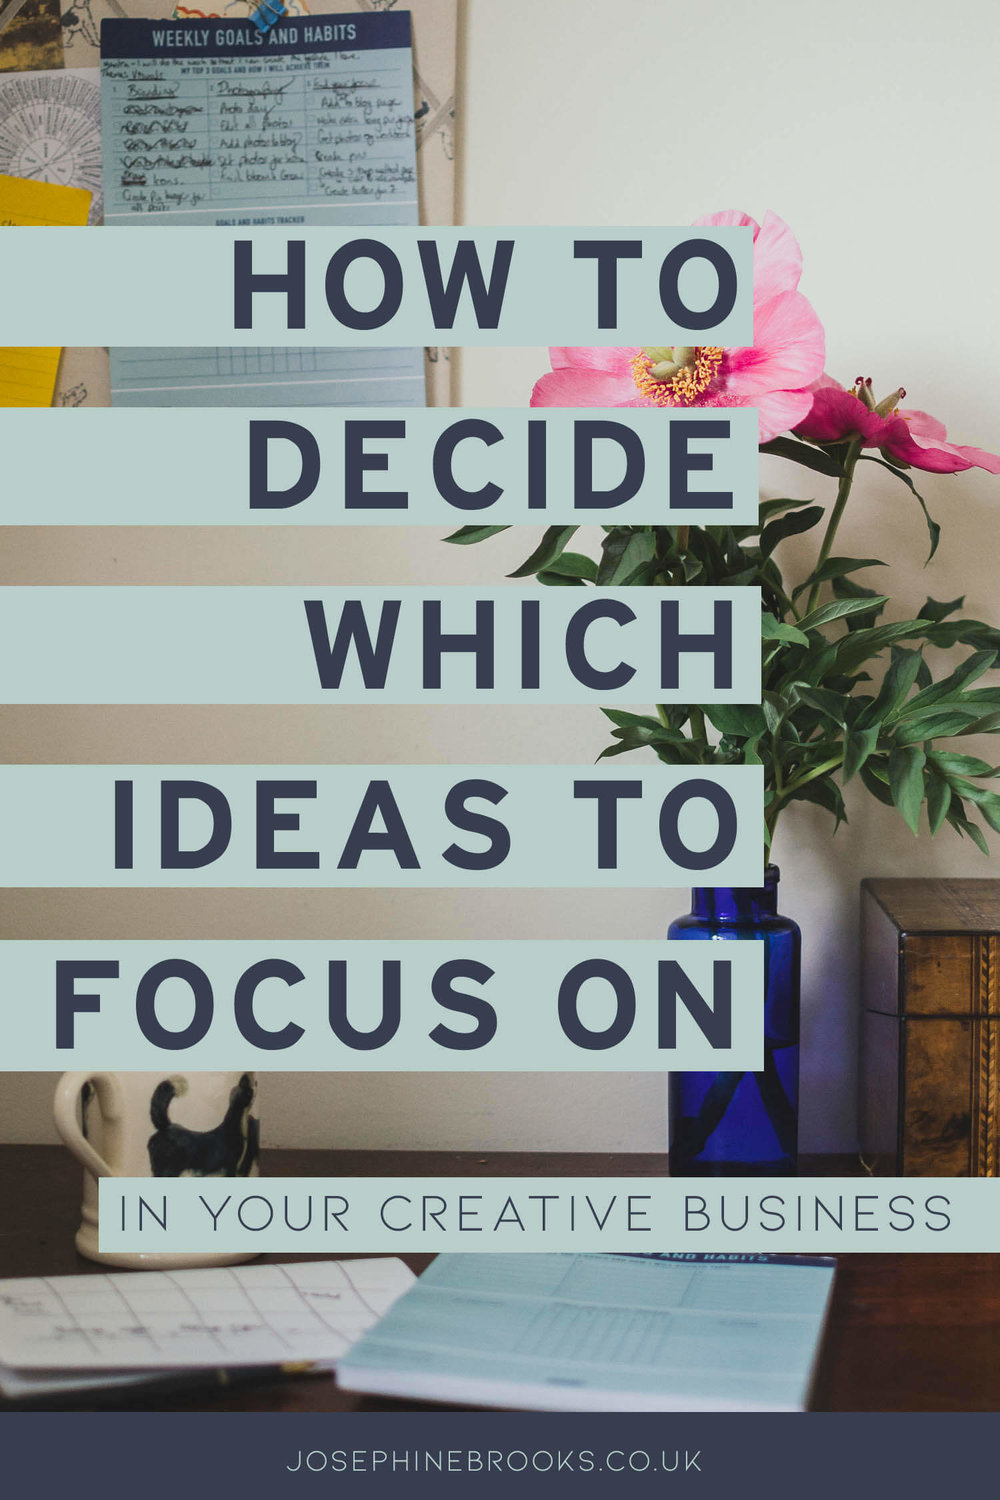 How to decide which ideas to focus on in your creative business, Where to focus in creative business, Dealing with overwhelm in business, Maker business focus areas